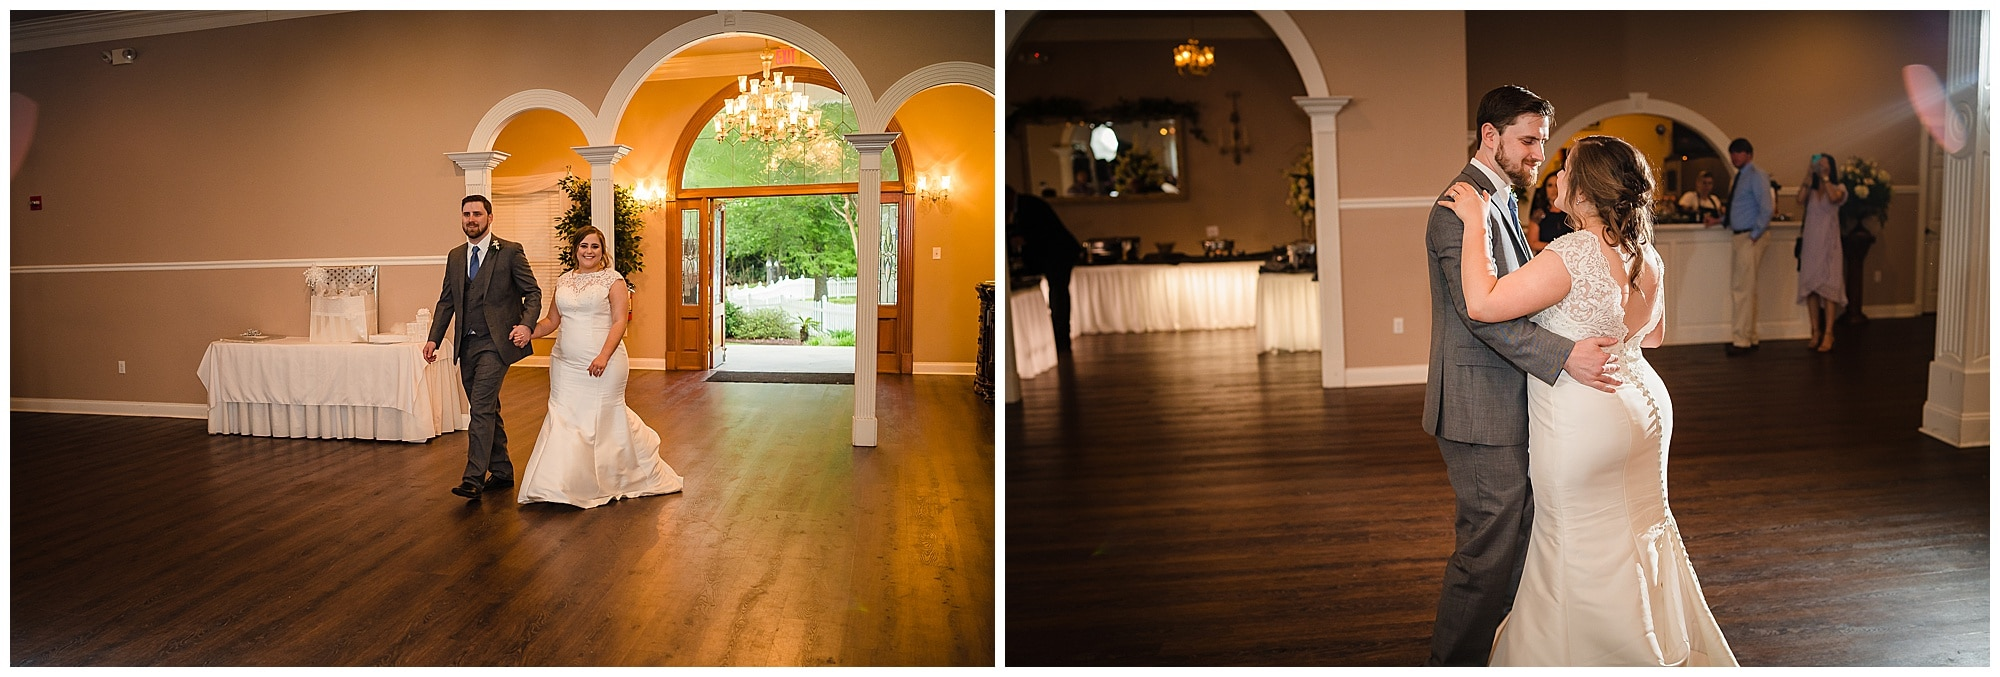 entrance and first dance at Forrest Grove Plantation Denham Springs